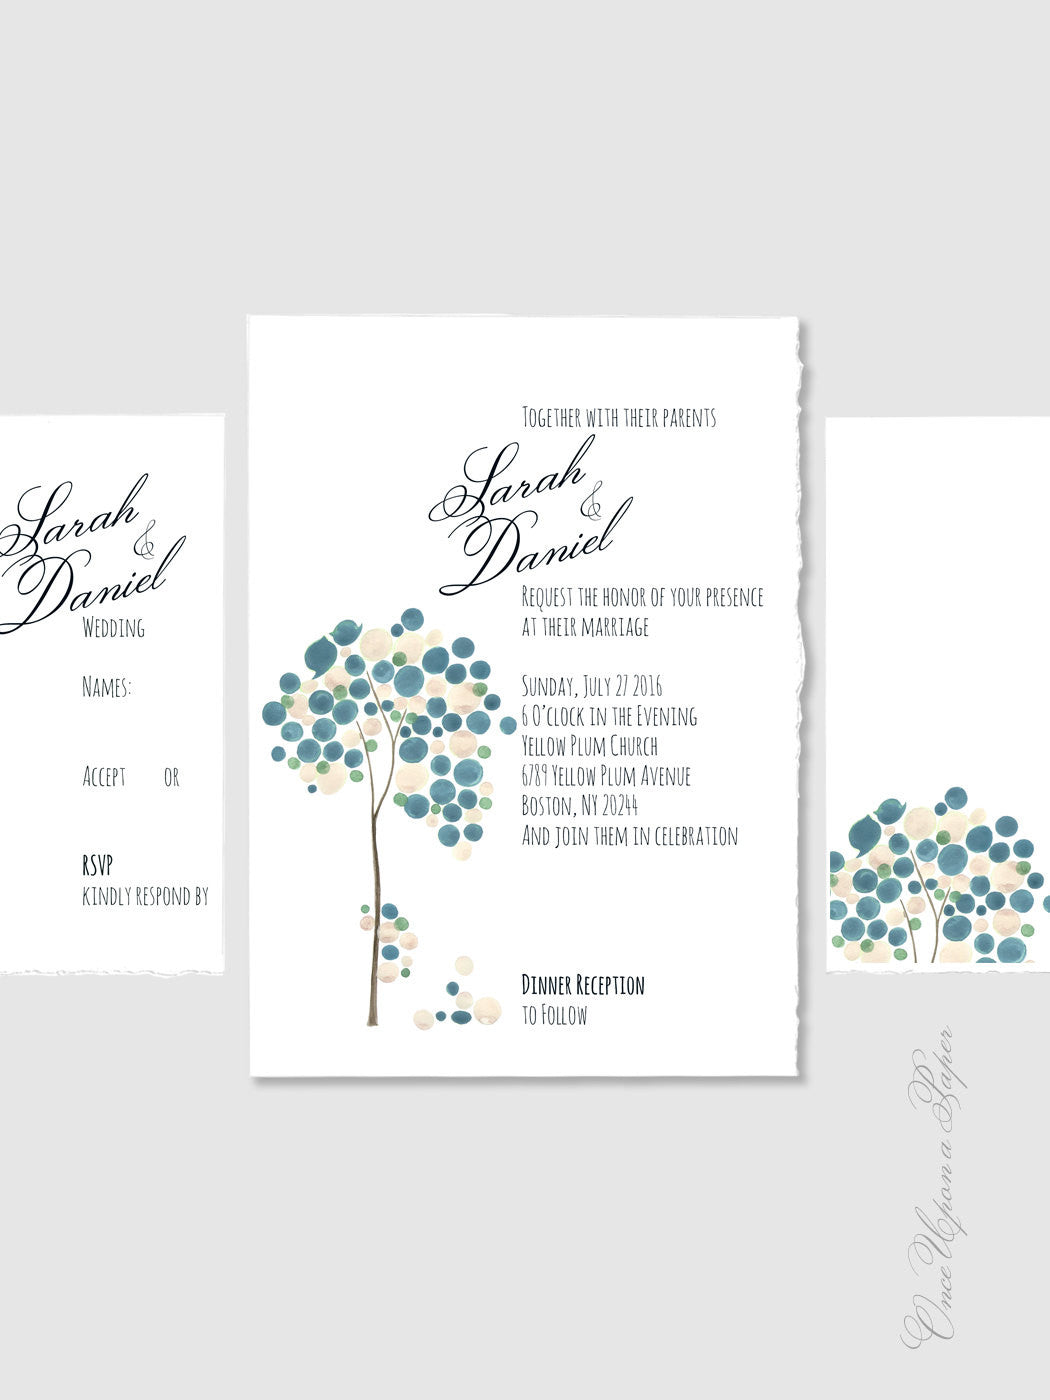 image about Printable Save the Dates titled Tailor made Marriage ceremony Suite Bundle Printable - Help save the Day, Marriage Invites, RSVP, Thank Yourself Playing cards